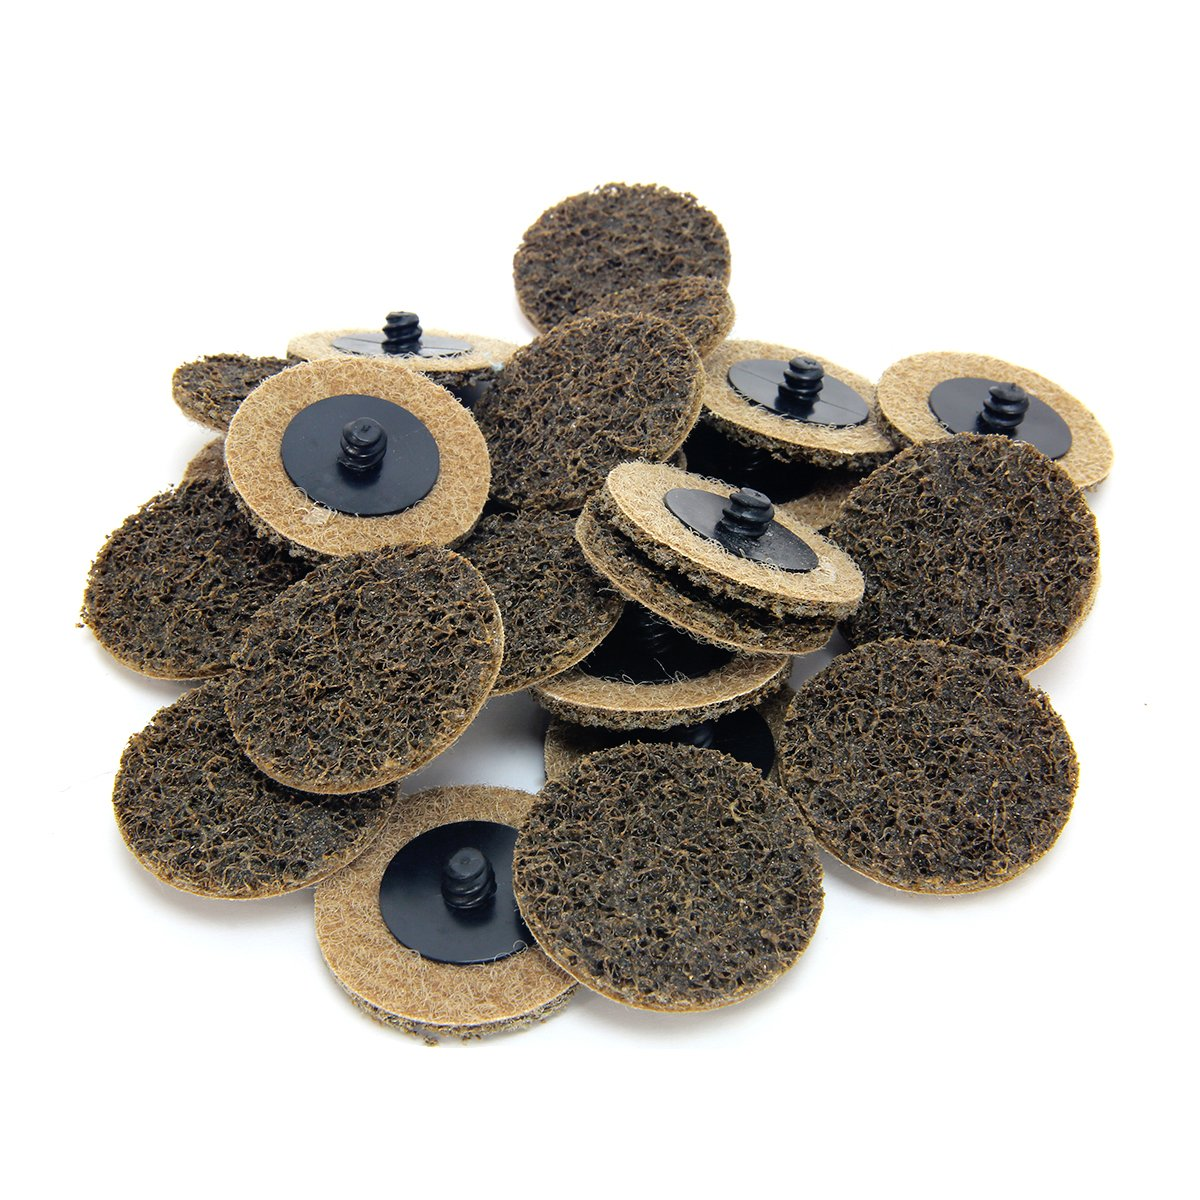 2'' Coar Grit Roloc Cleaning Roll Lock Sanding Disc 25pcs